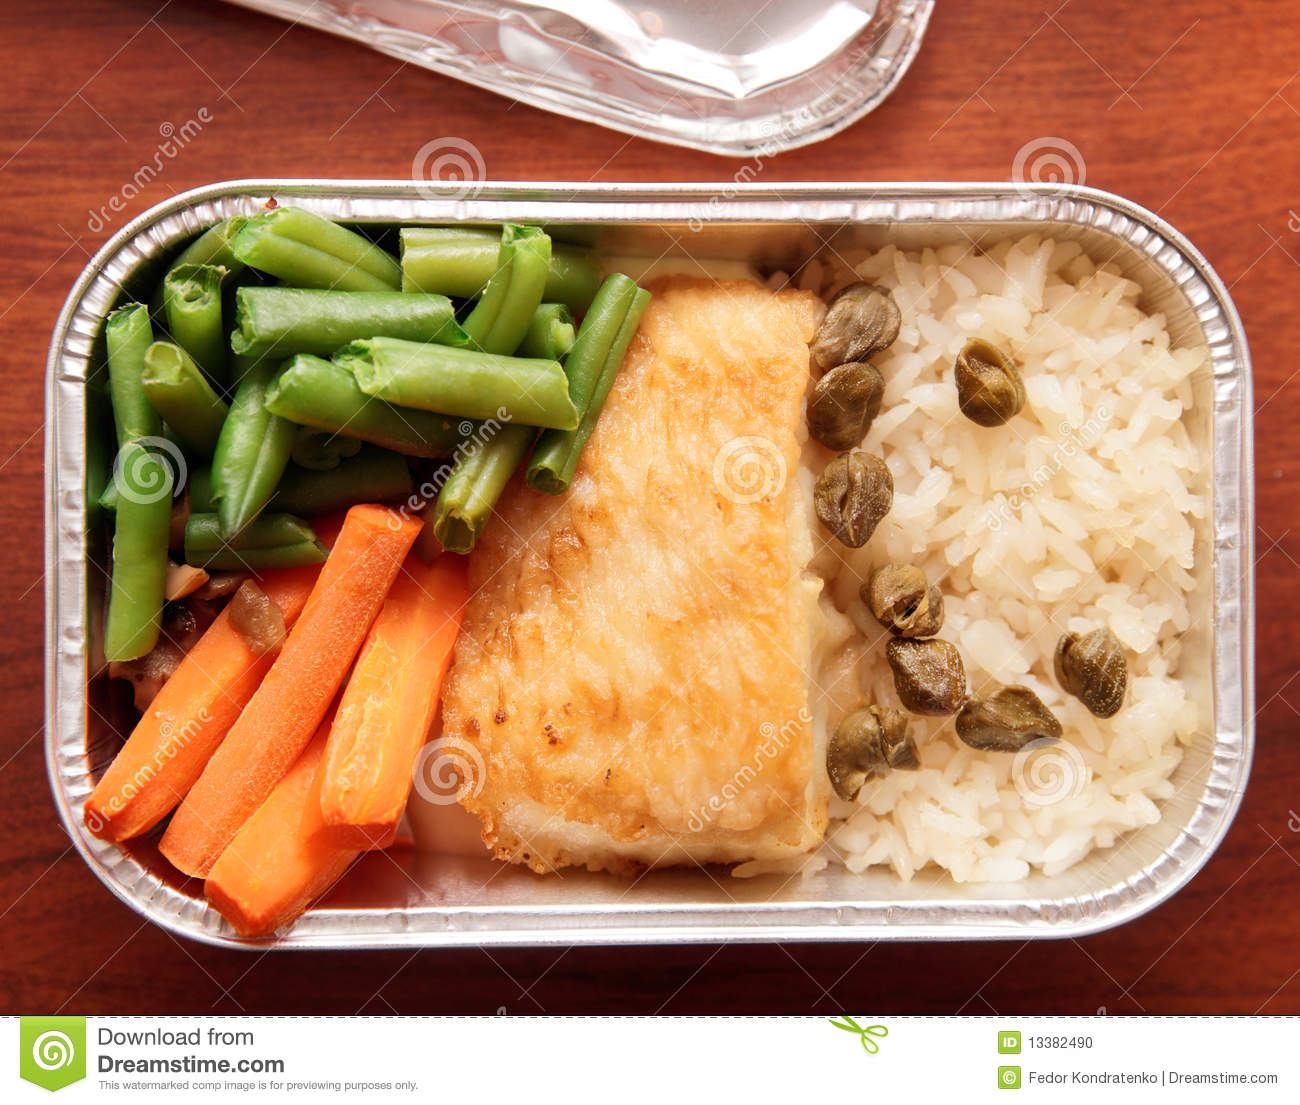 Fish and rice - airline meal